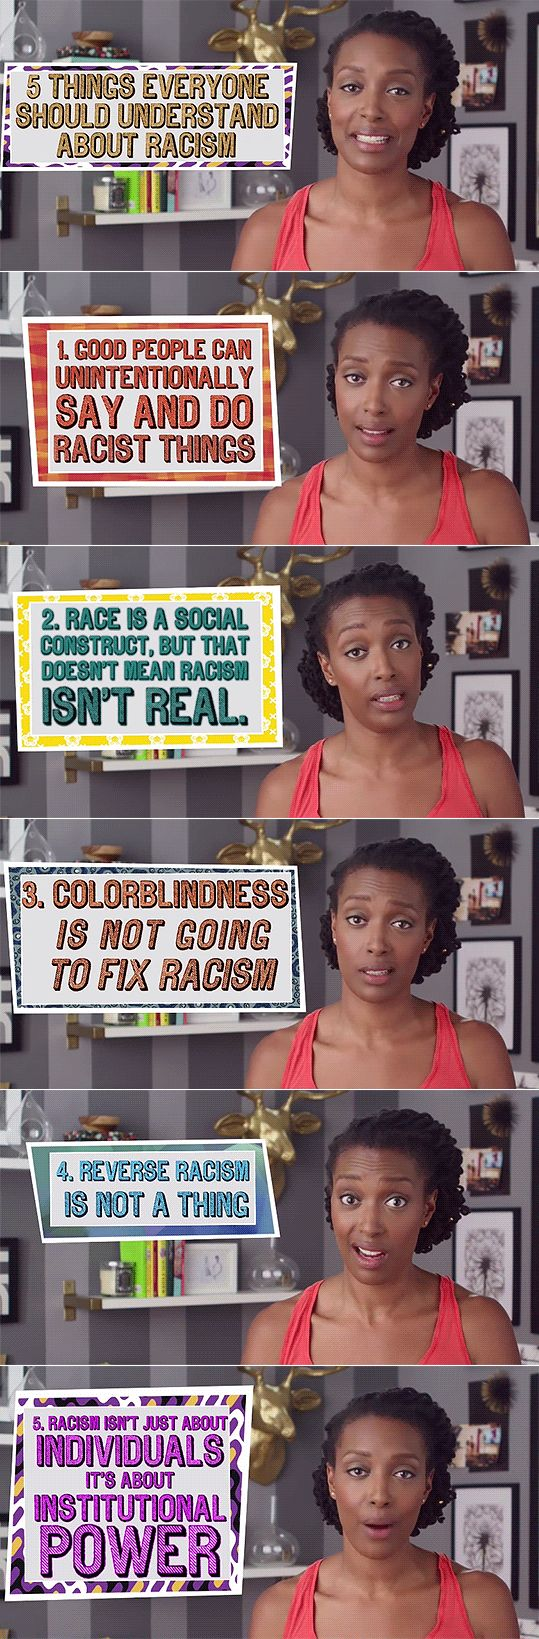 5 Things You Should Know About Racism | Decoded | MTV News with Franchesca Ramsey